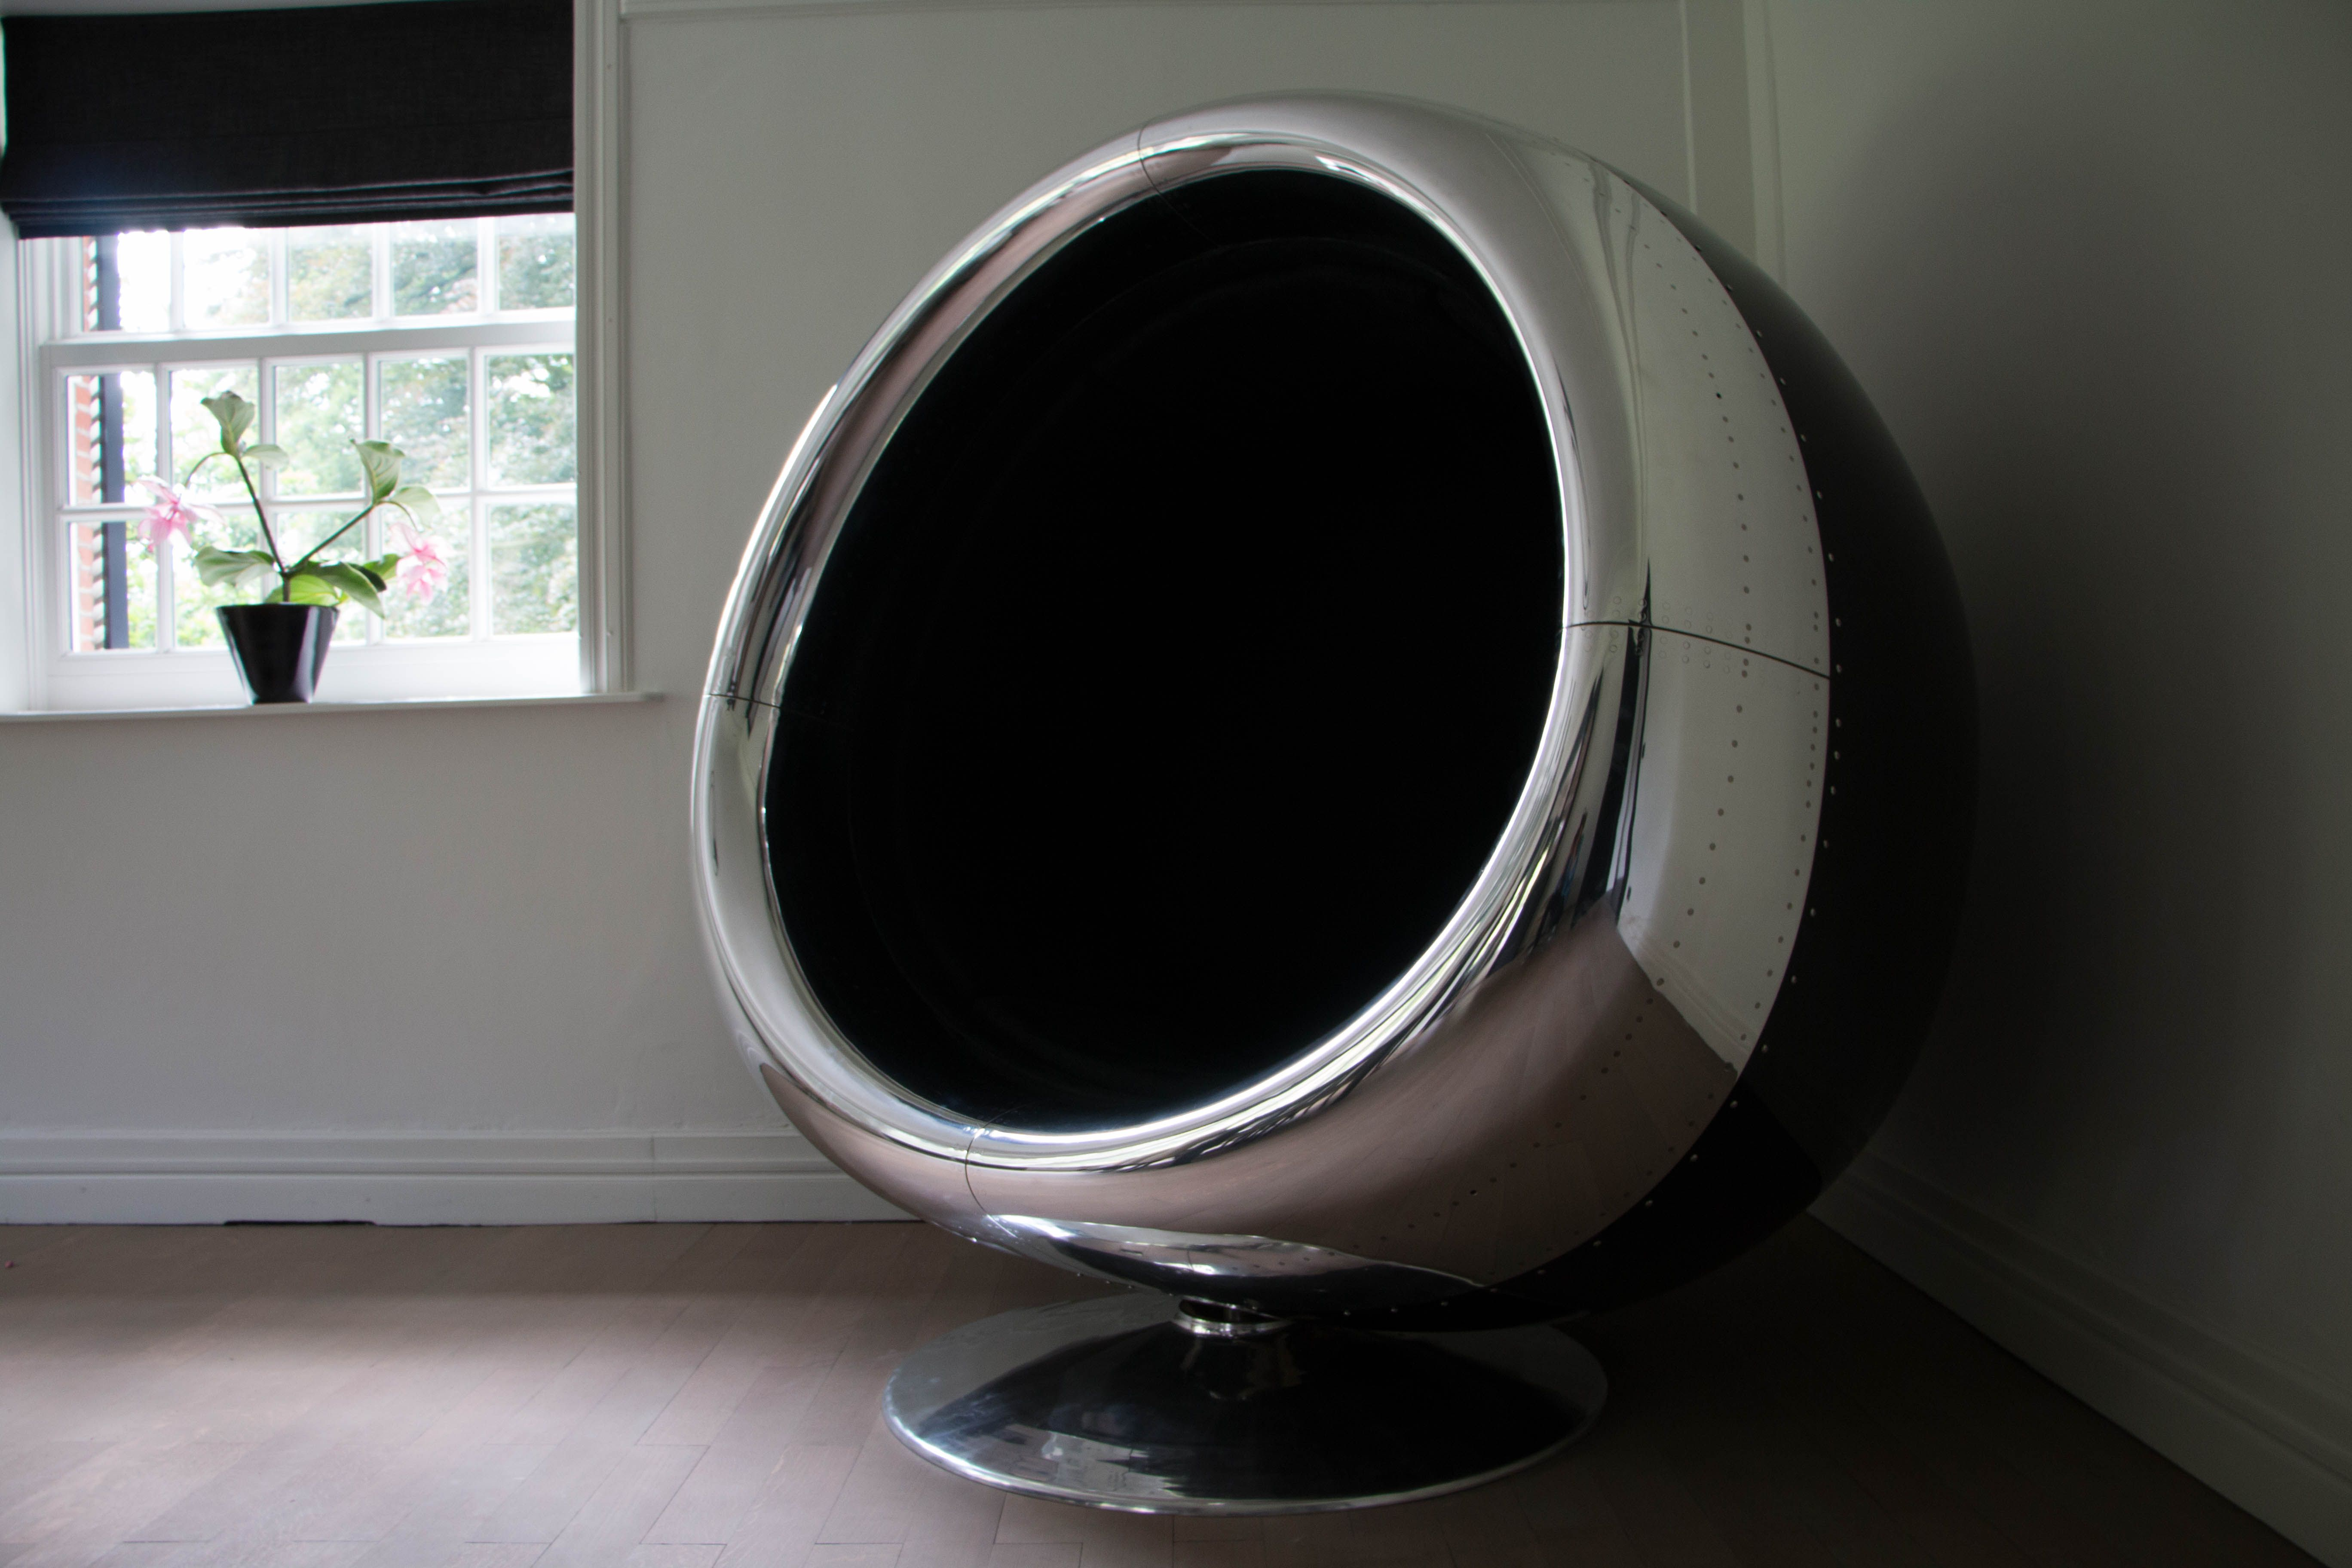 Boeing 737 Engine Cowling Chair Made By Plane Industries